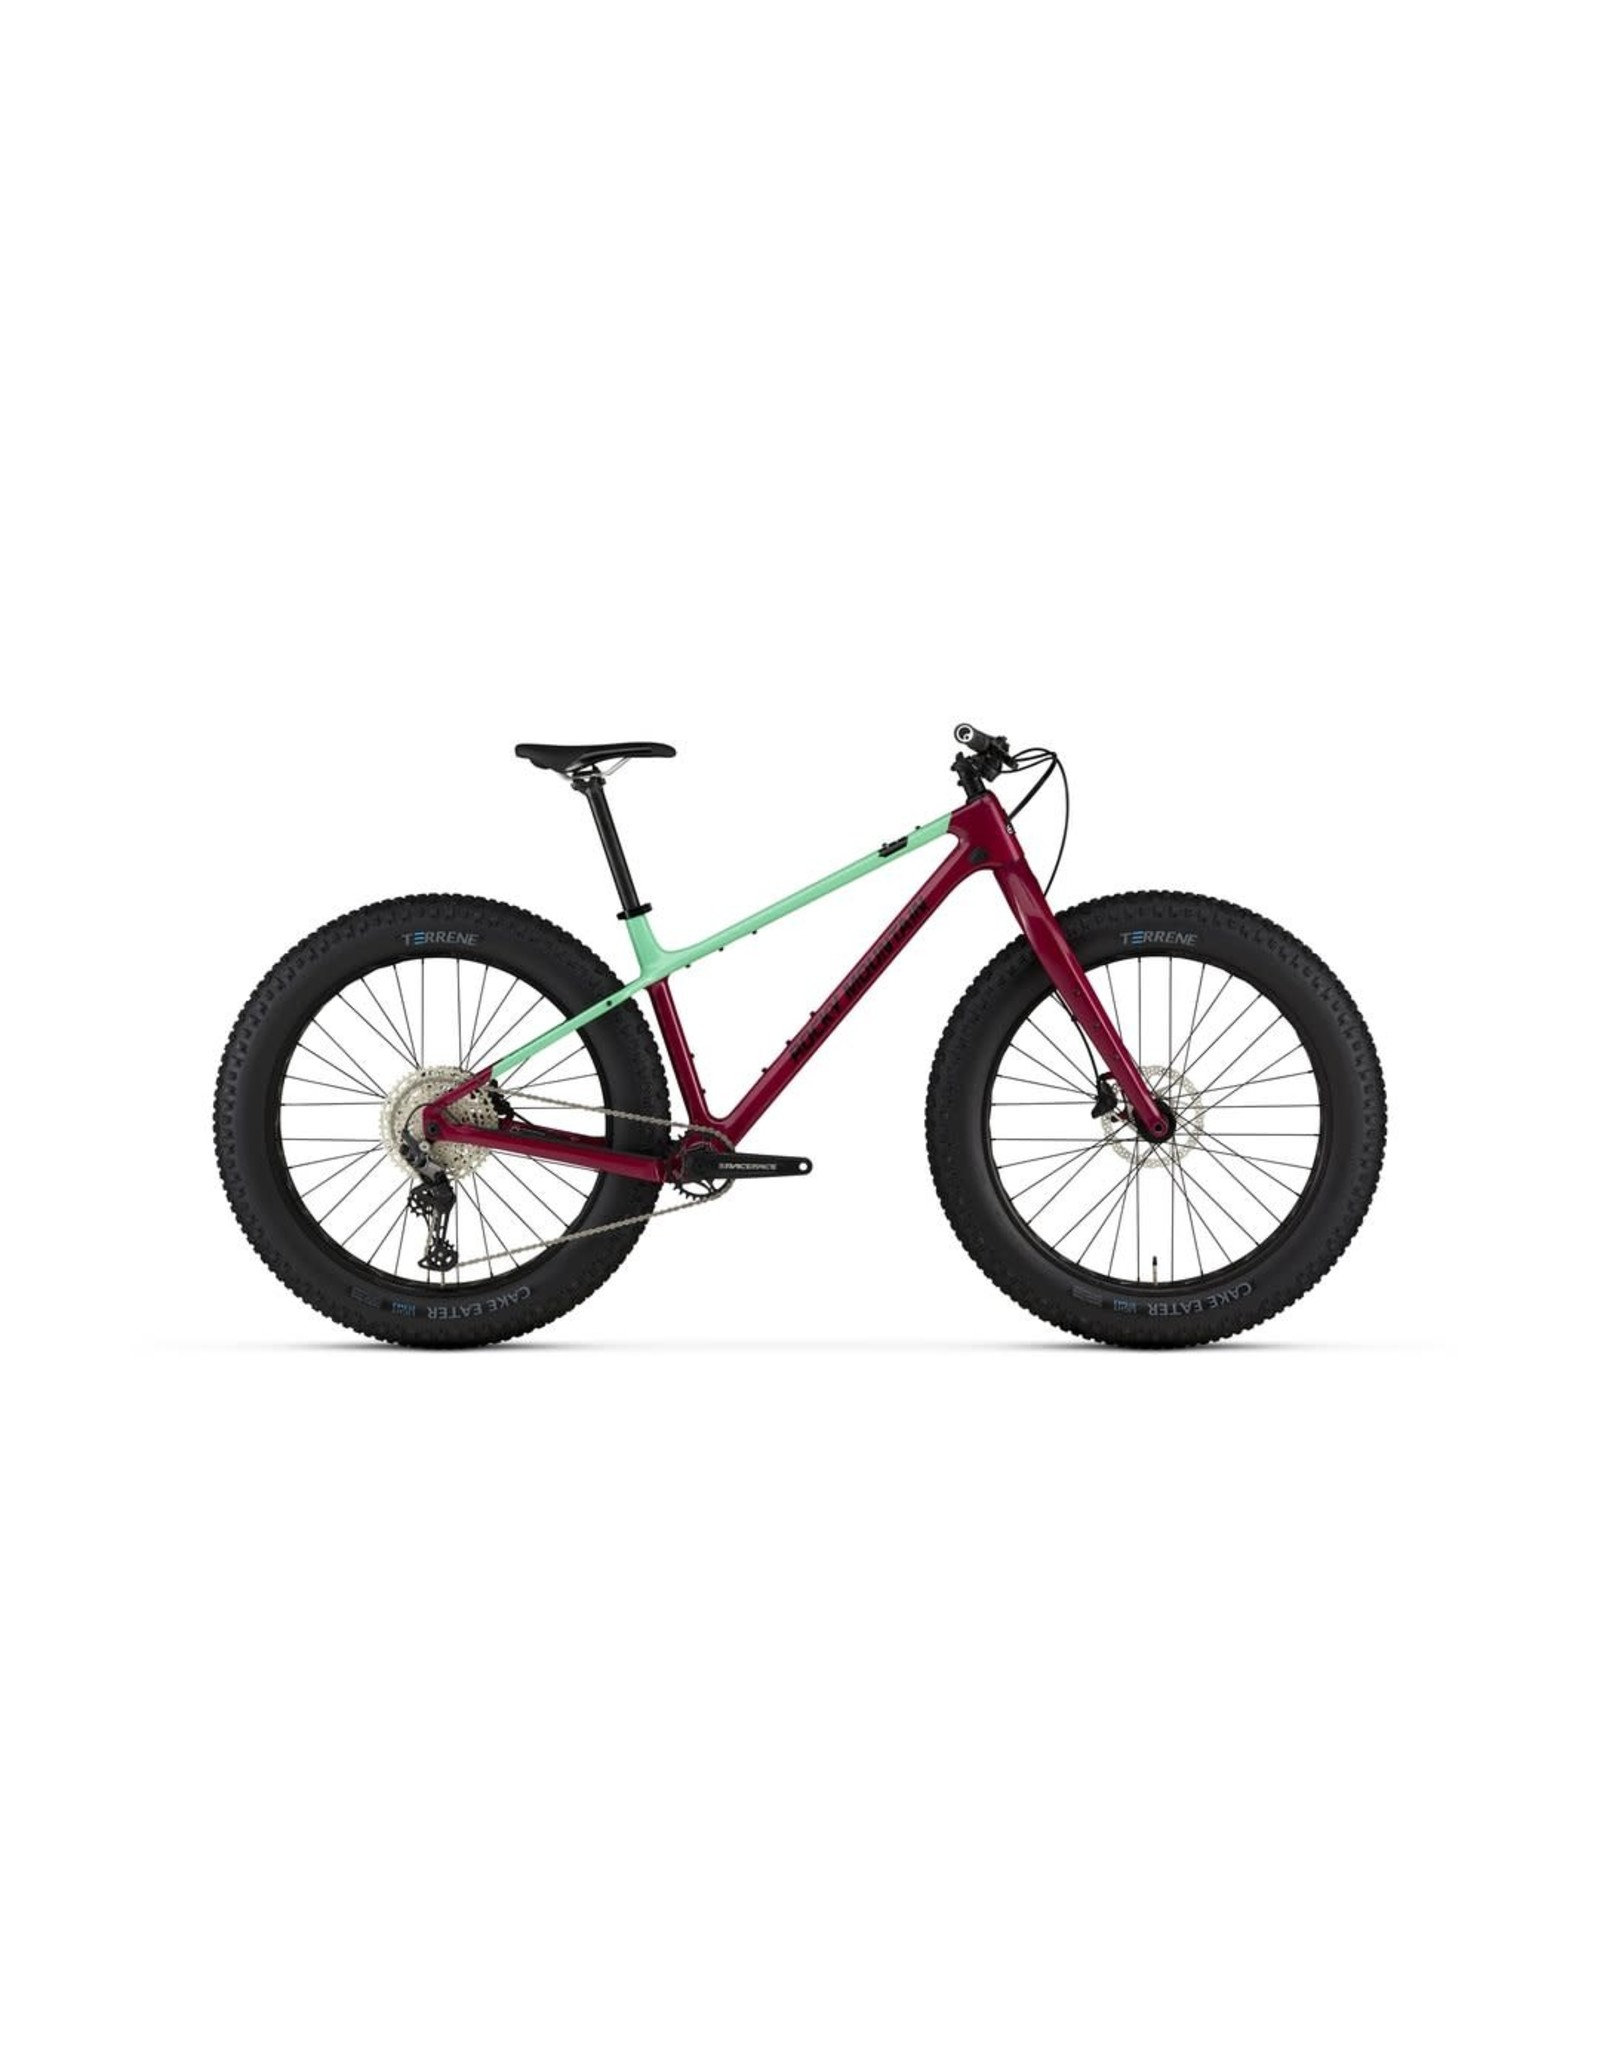 ROCKY MOUNTAIN 2022 Rocky Mountain Blizzard C30 - Red/Green - Small